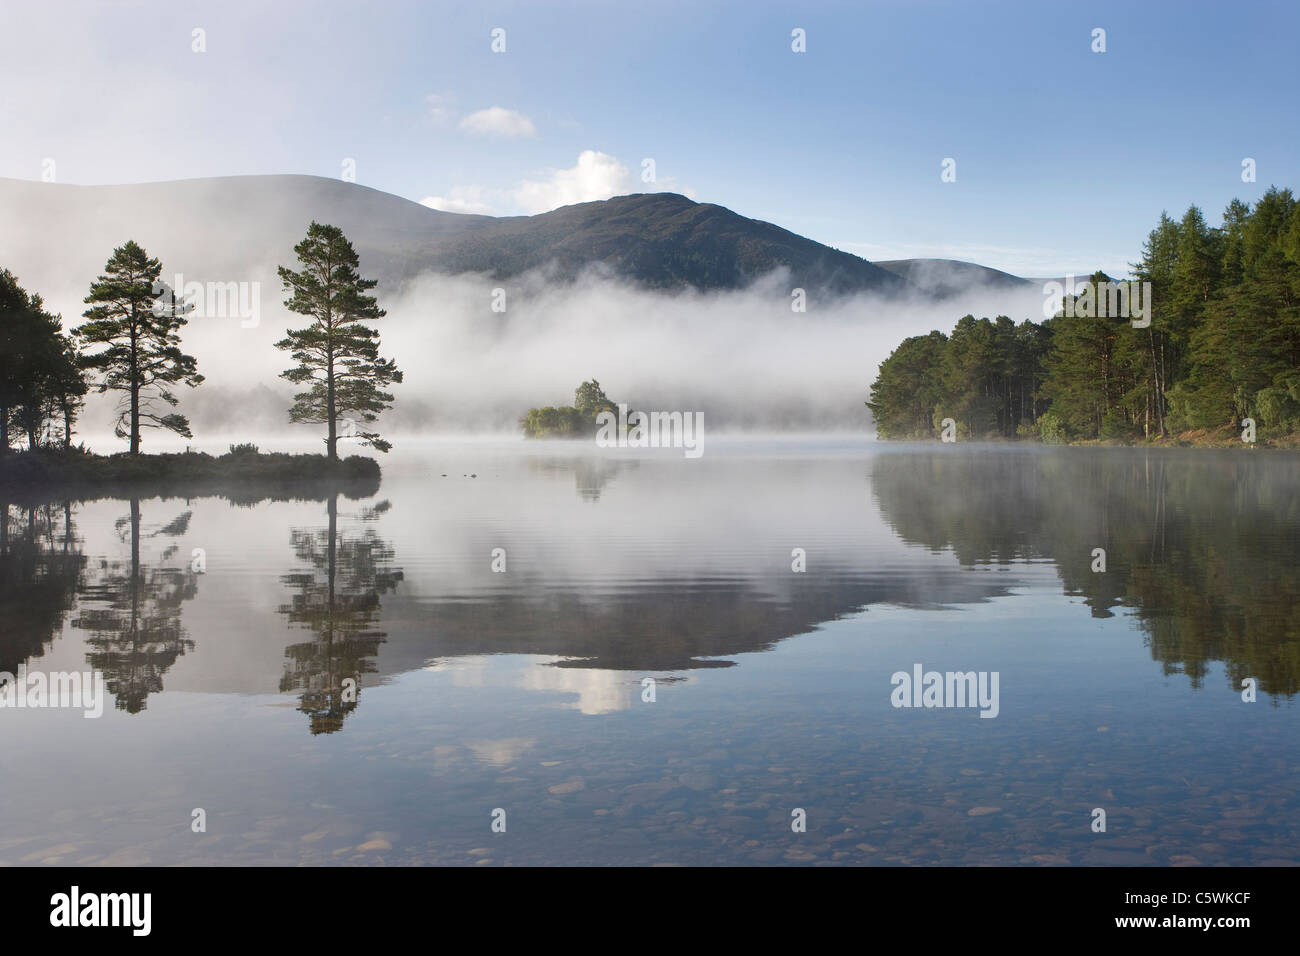 Morning at Loch an Eilien, Rothiemurchus Forest, Cairngorms National Park, Scotland, Great Britain. Stock Photo